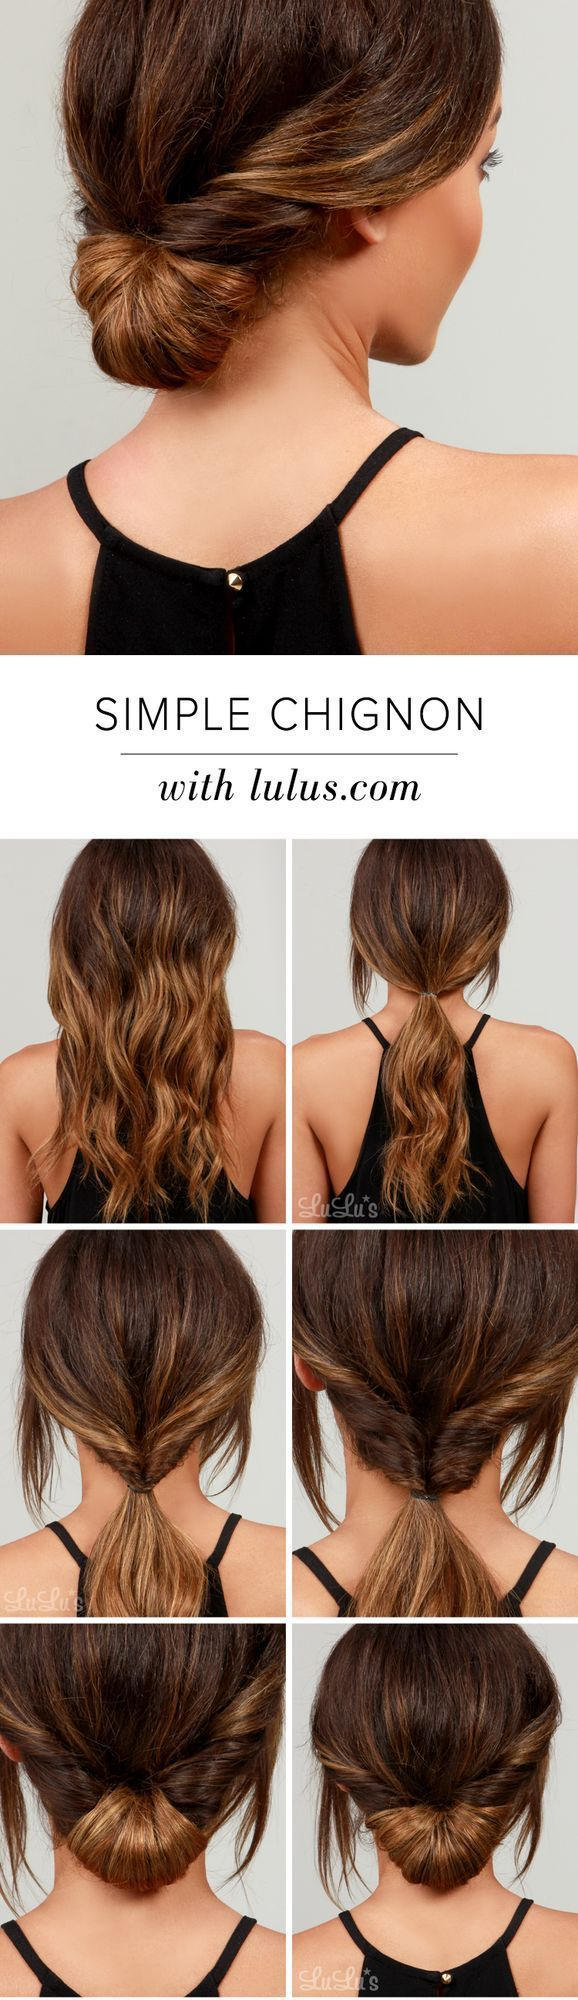 LuLus How-To: Simple Chignon Hair Tutorial (Lulus.com Fashion Blog) -